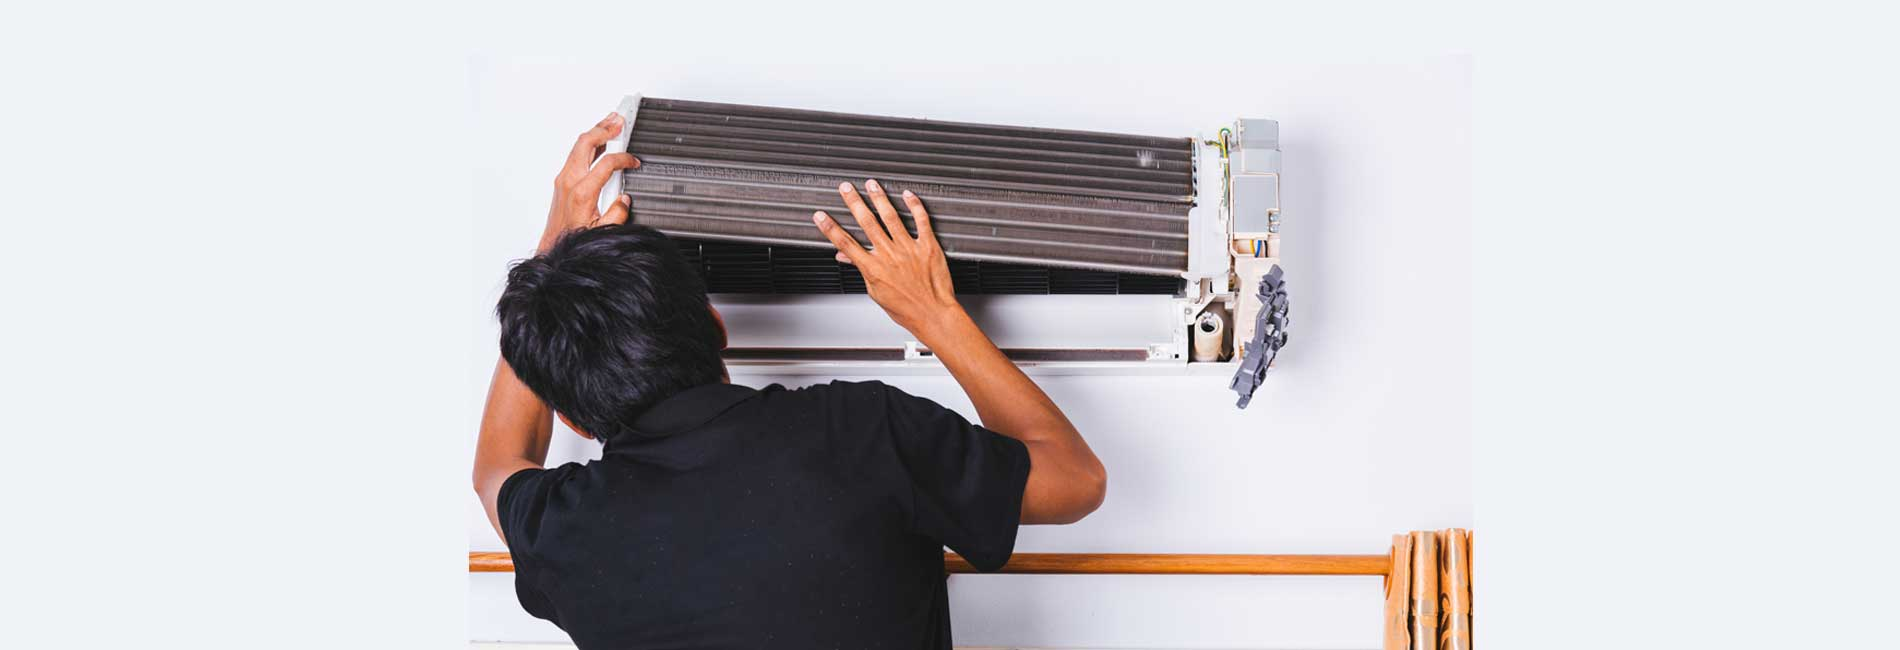 LG AC Installation in Mogappair East